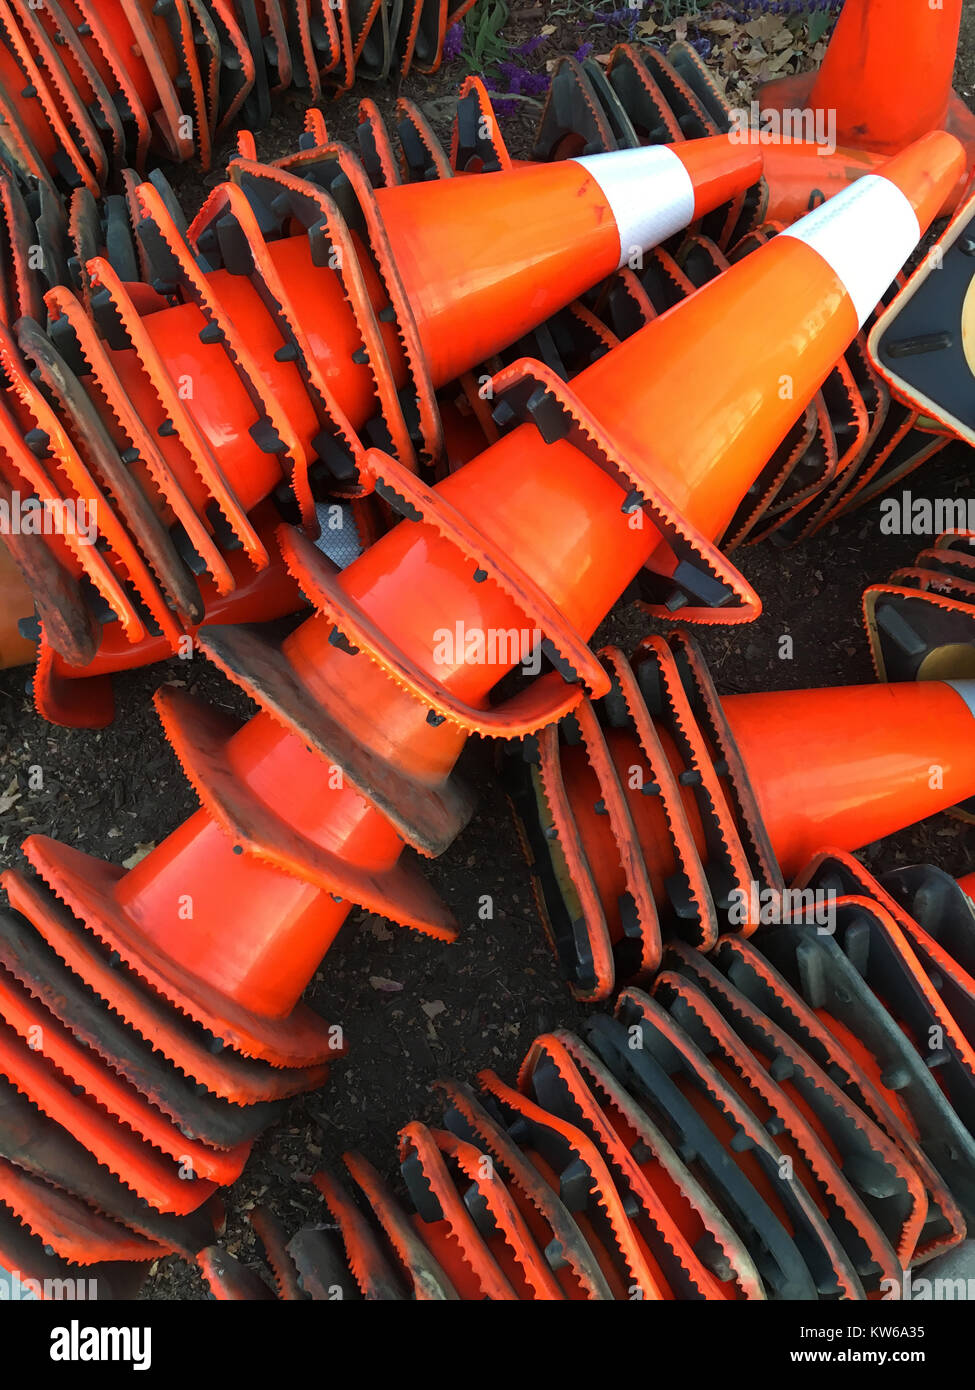 Stacked traffic cones - Stock Image